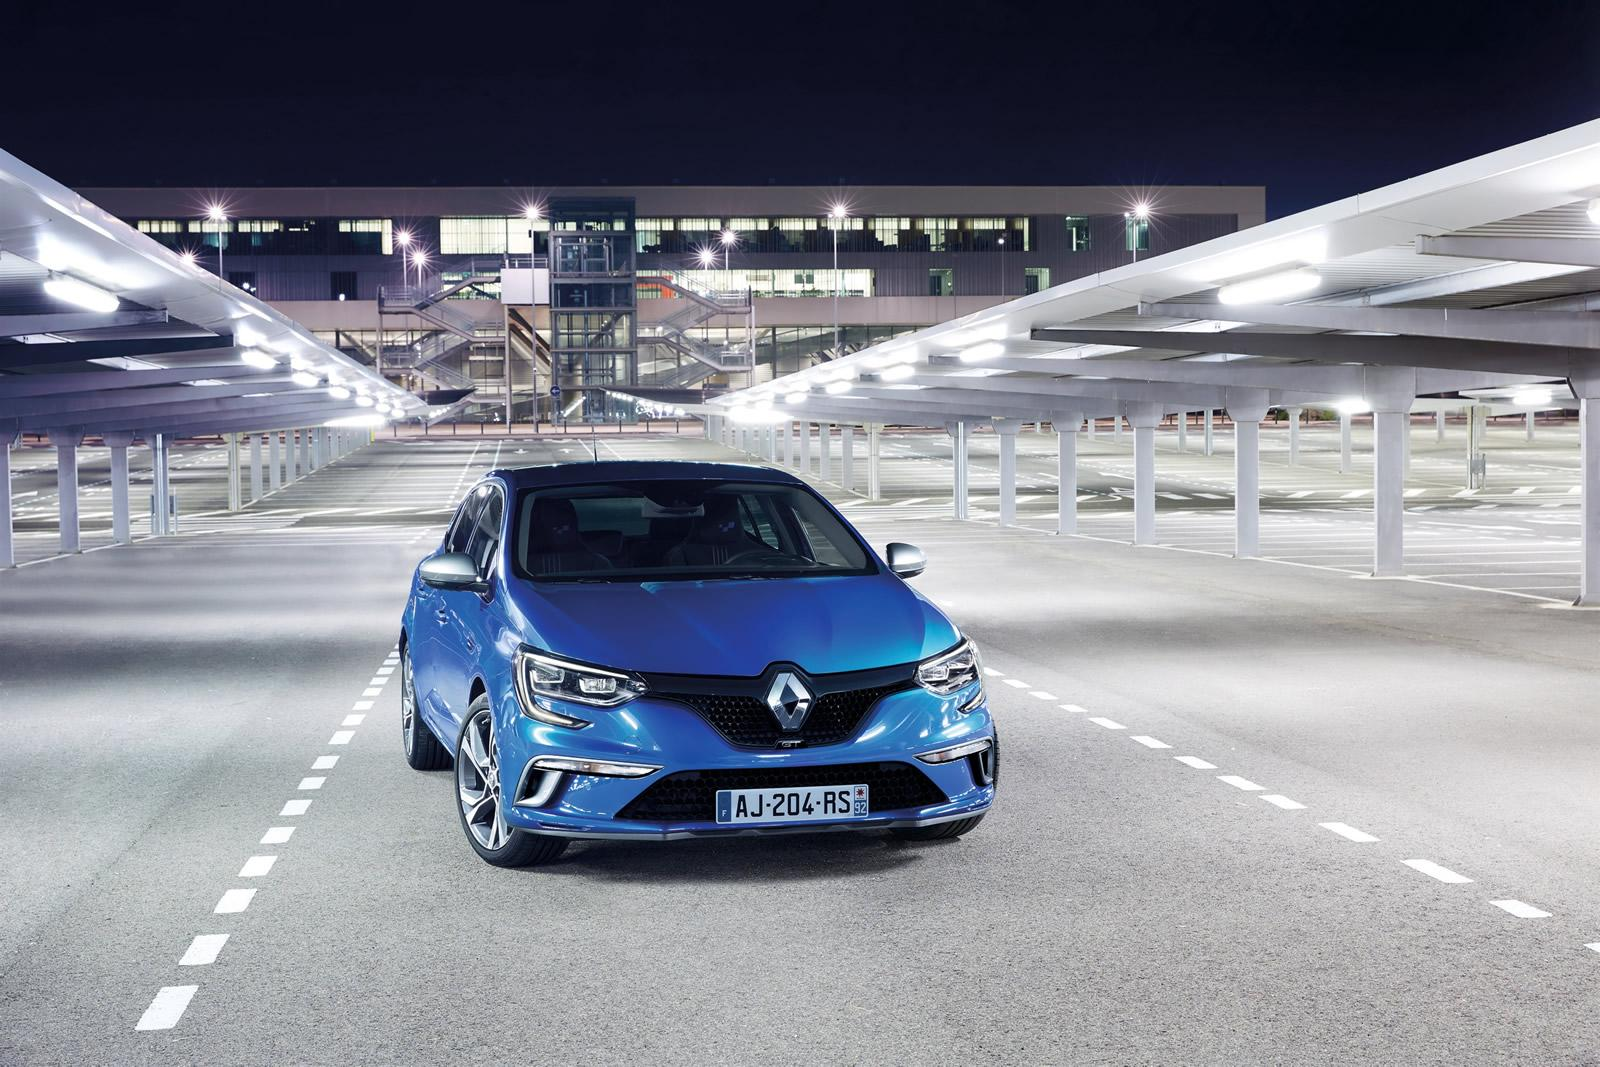 Hybrid Renault Megane Confirmed For 2017 With Dci Diesel